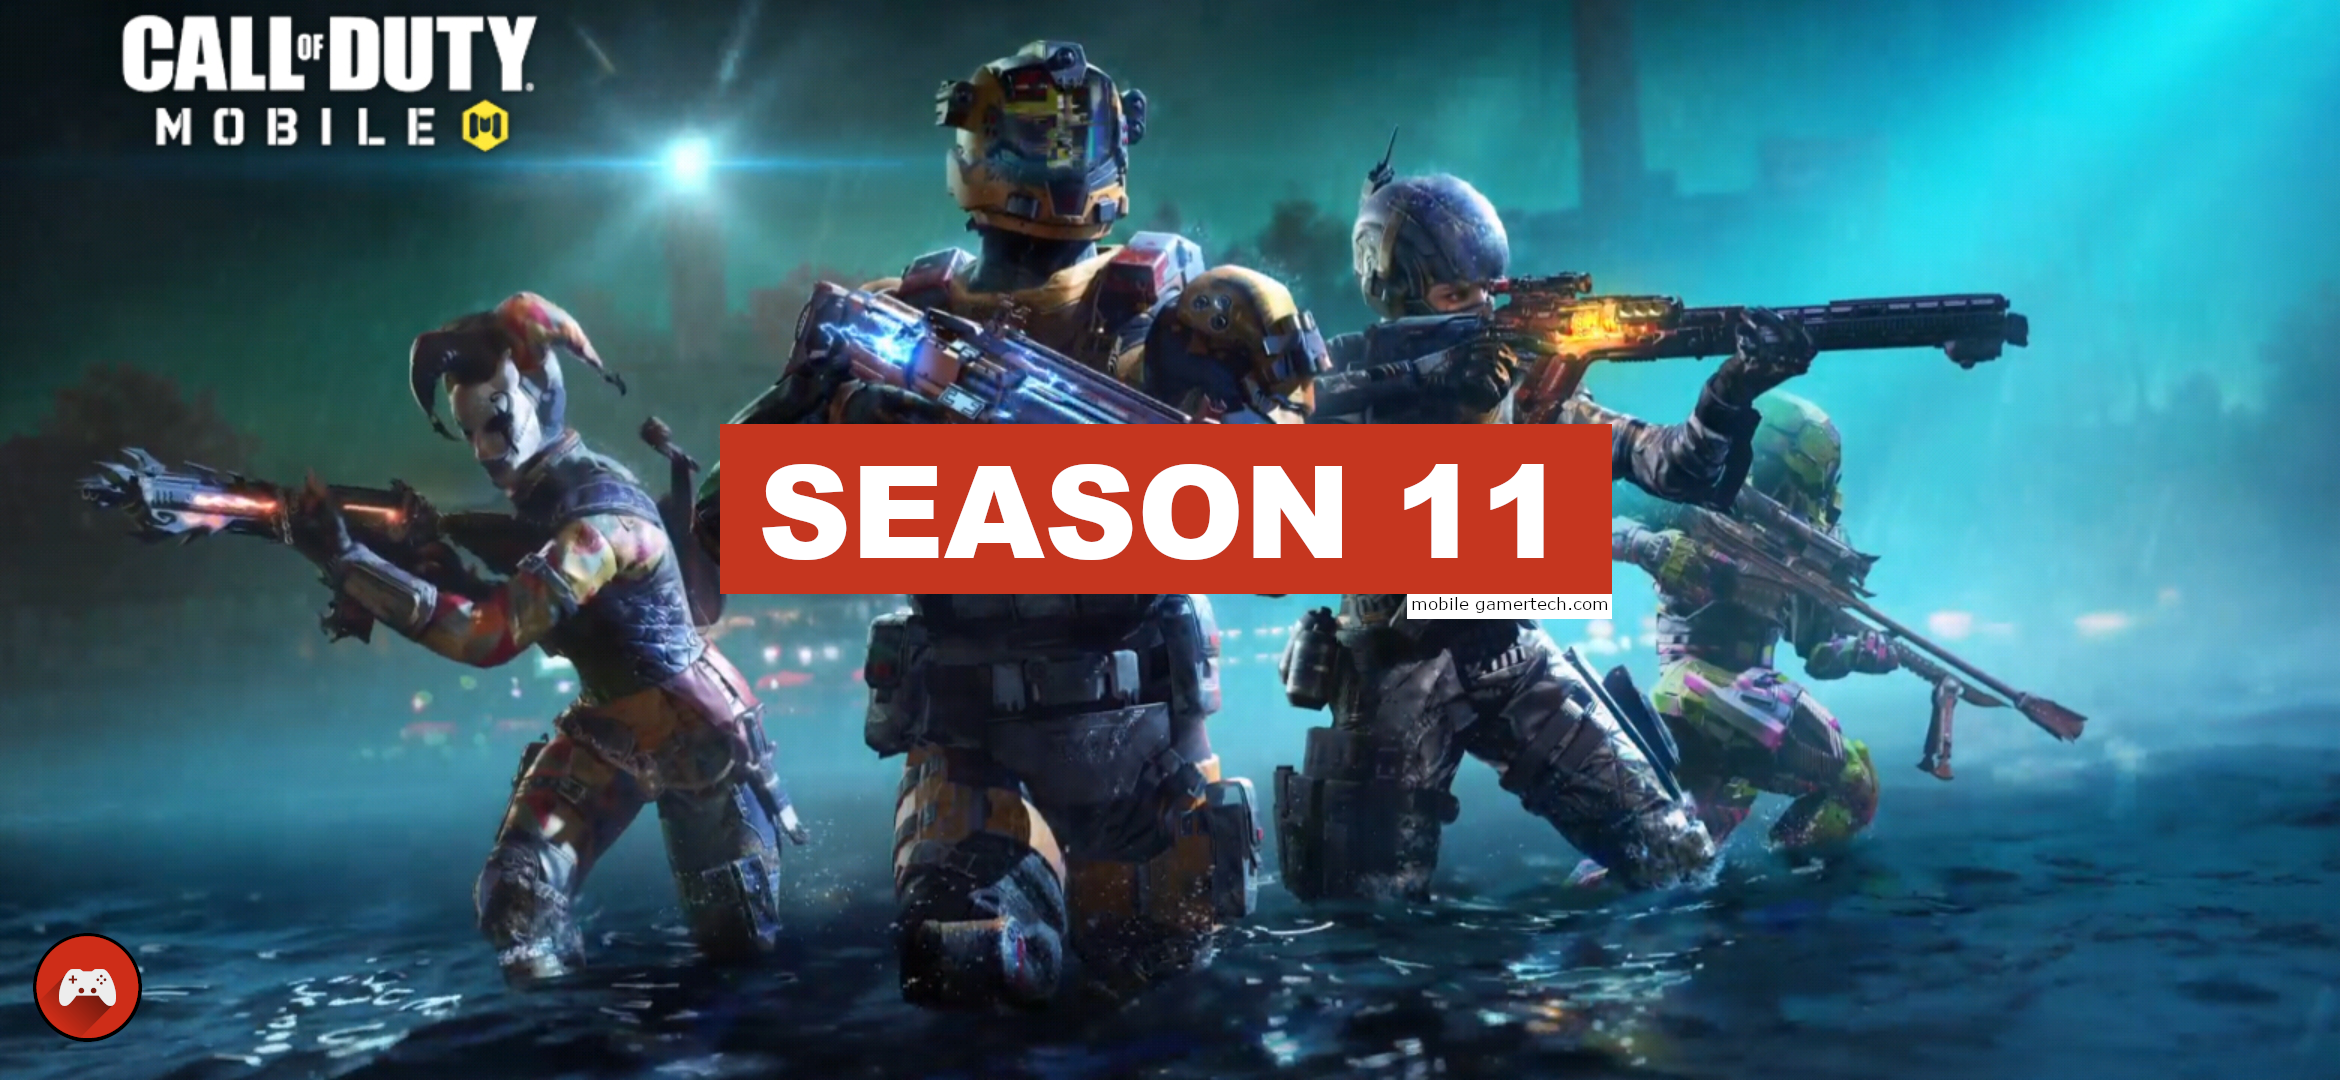 Call of Duty Mobile Season 11